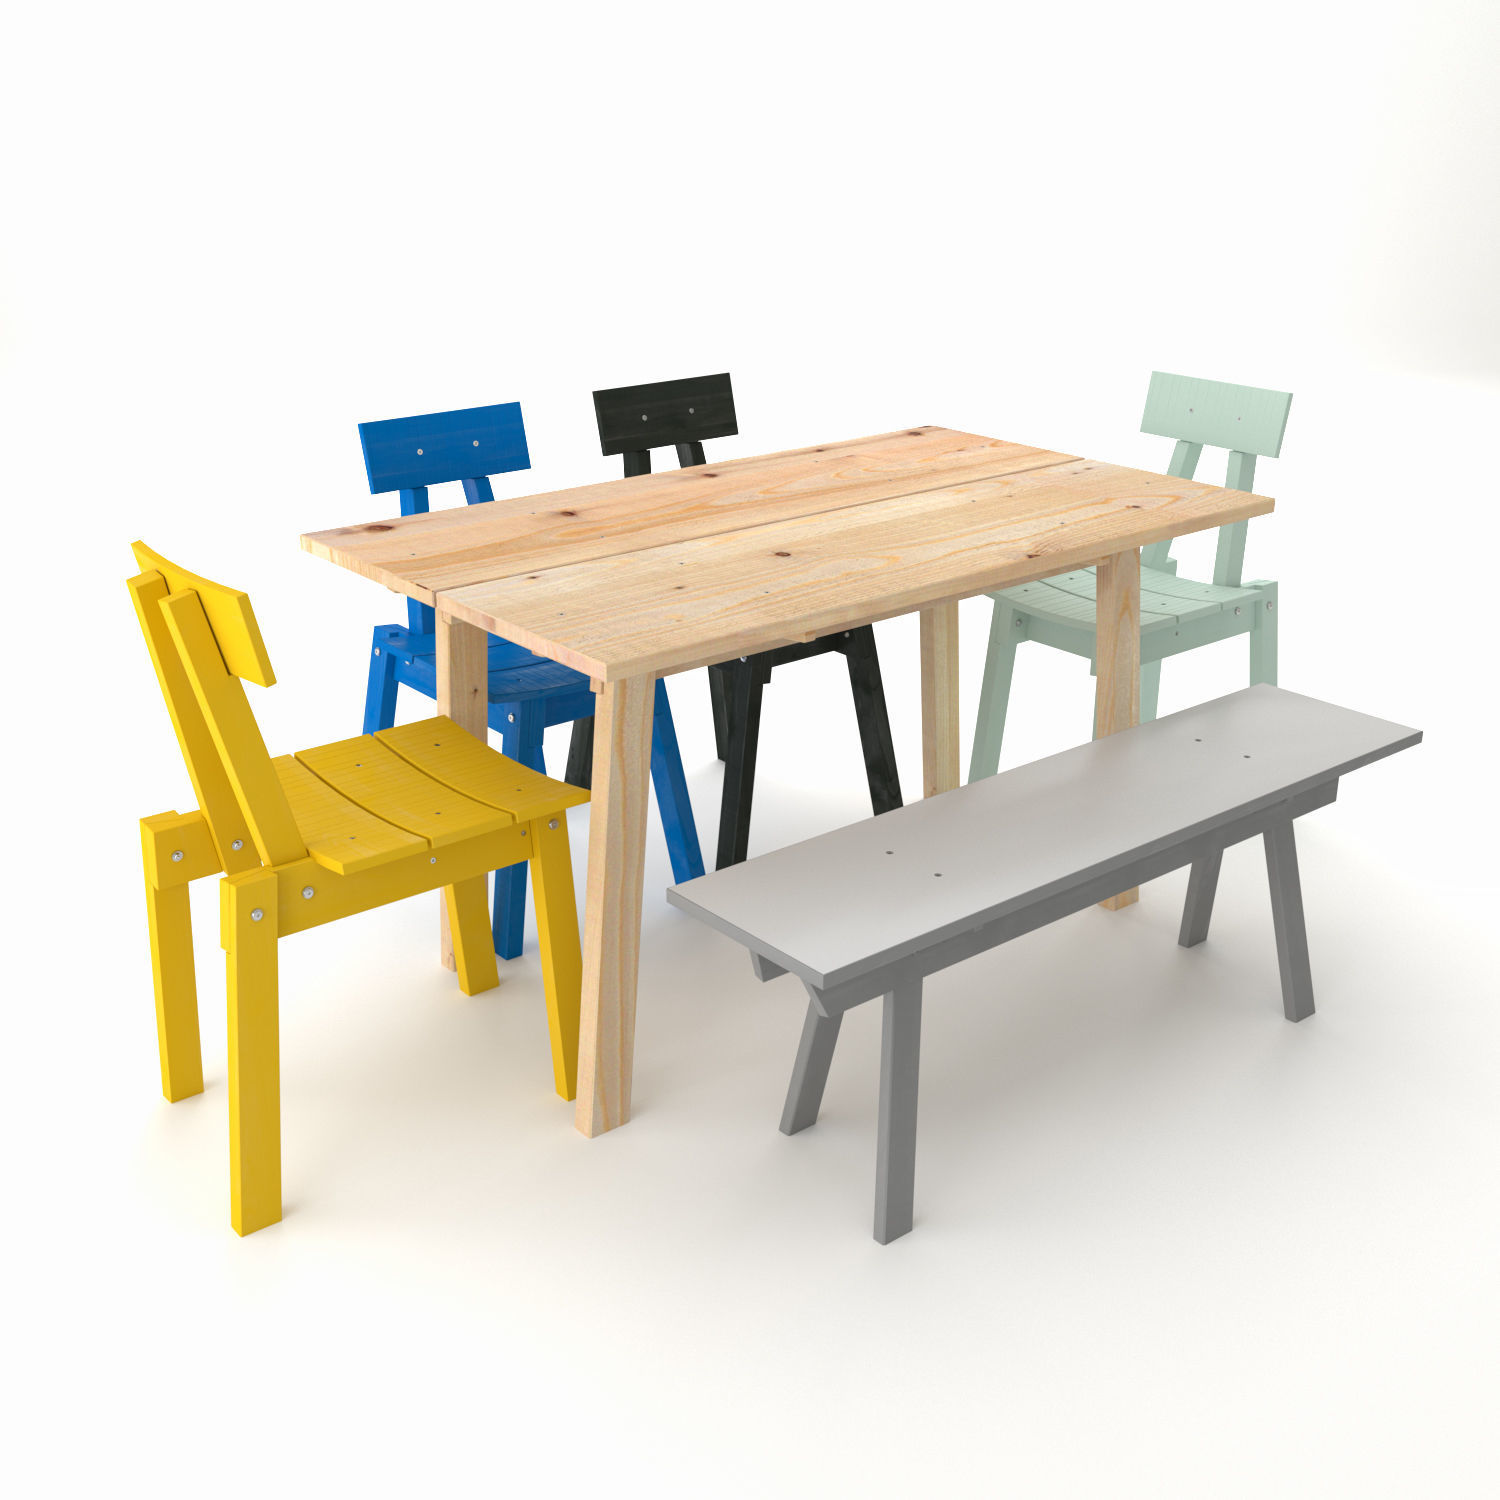 Industriell Ikea Table Bench Chair 2018 3d Model